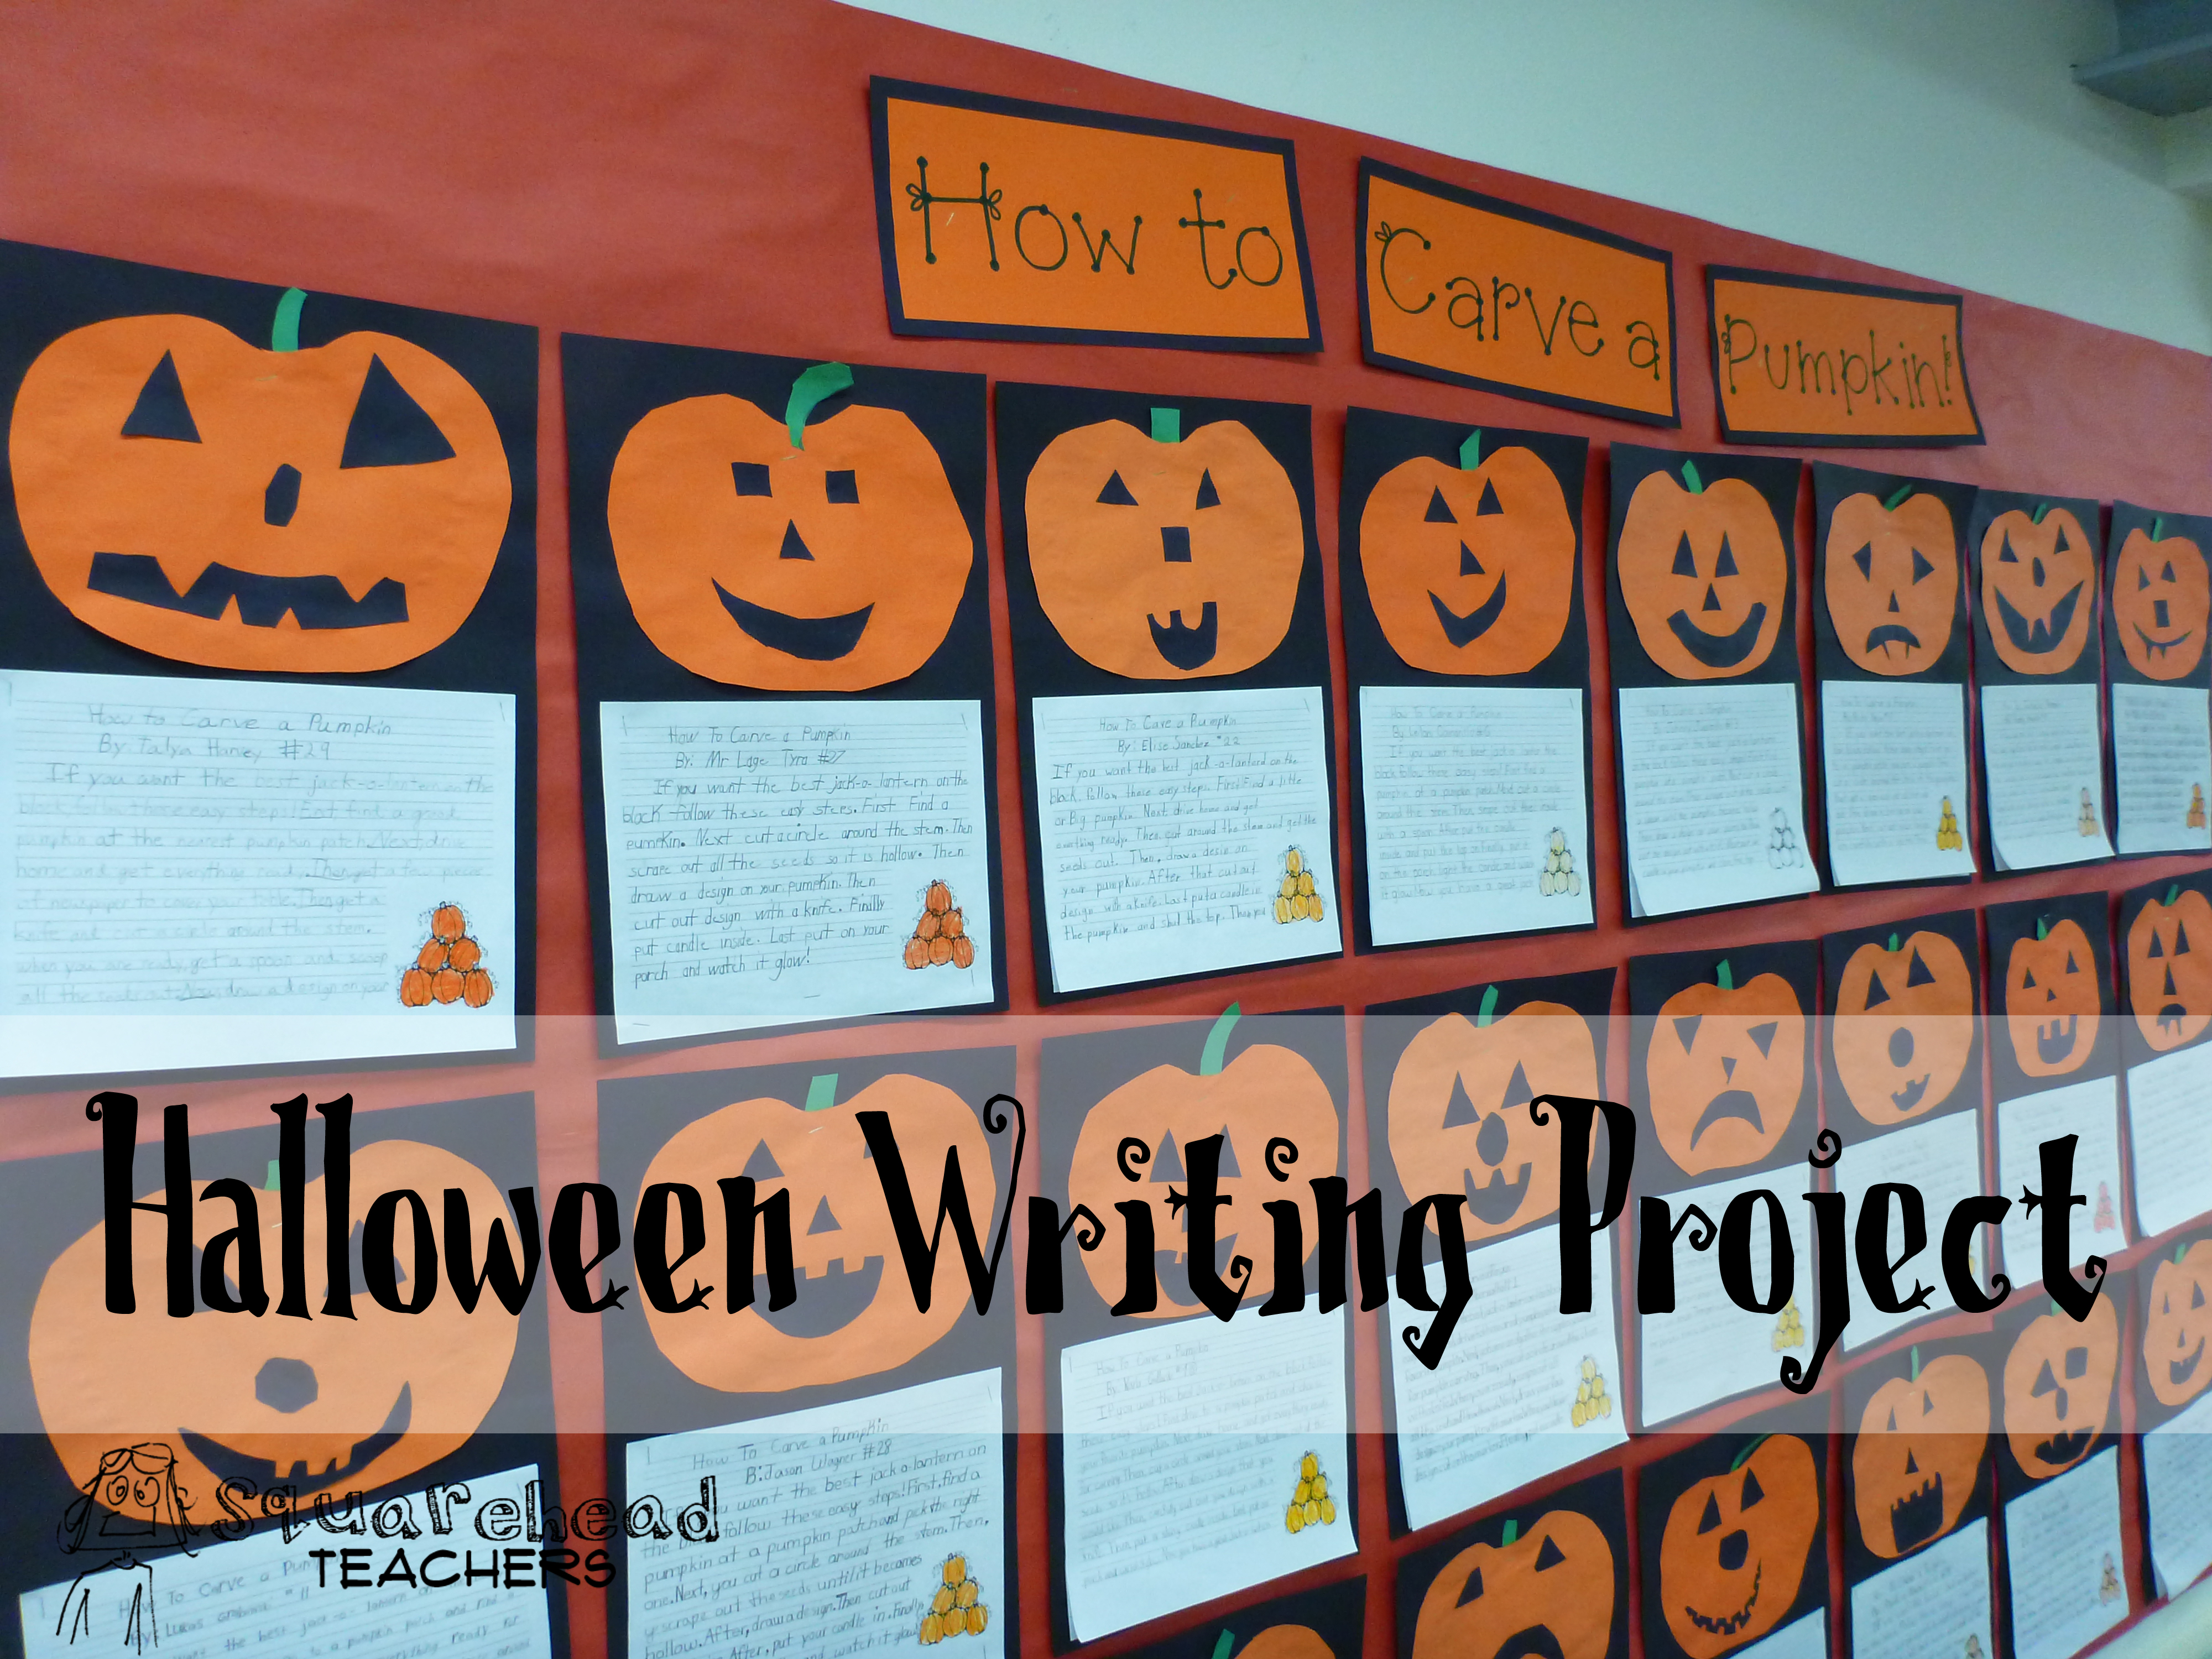 How To Carve A Pumpkin Halloween Writing Project